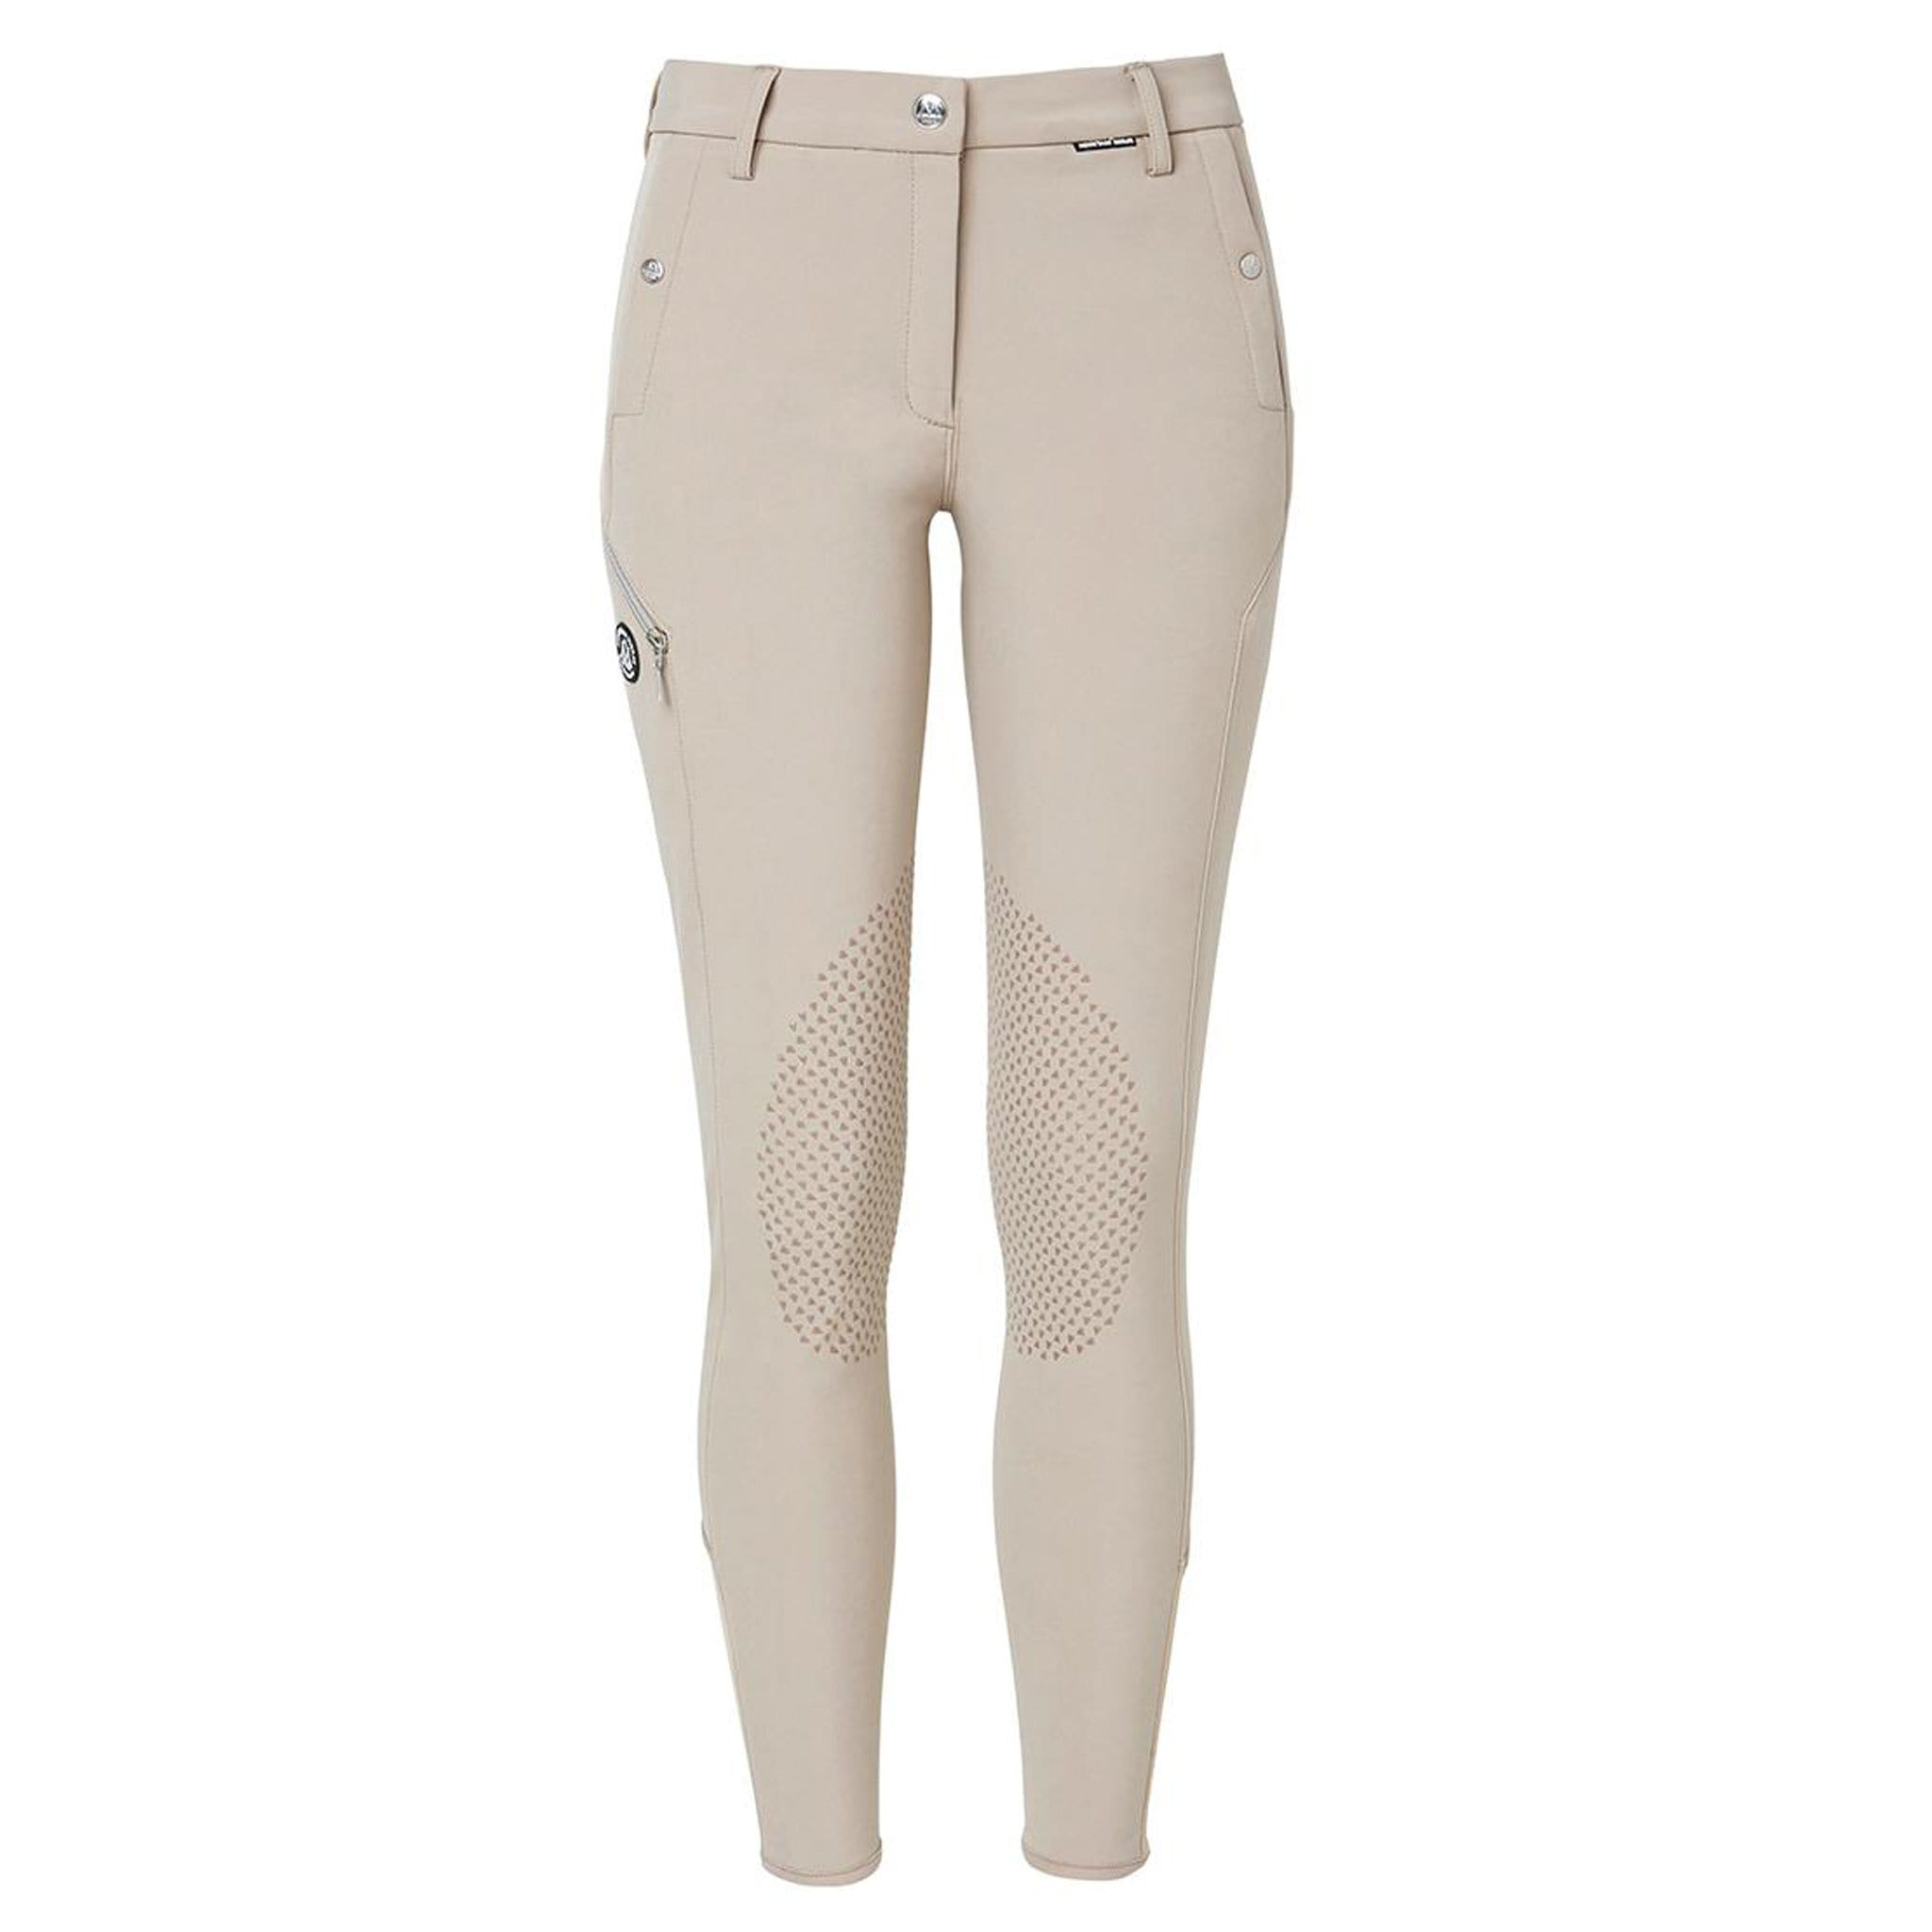 Mountain Horse Frost Tech Breeches Beige Front View 05269